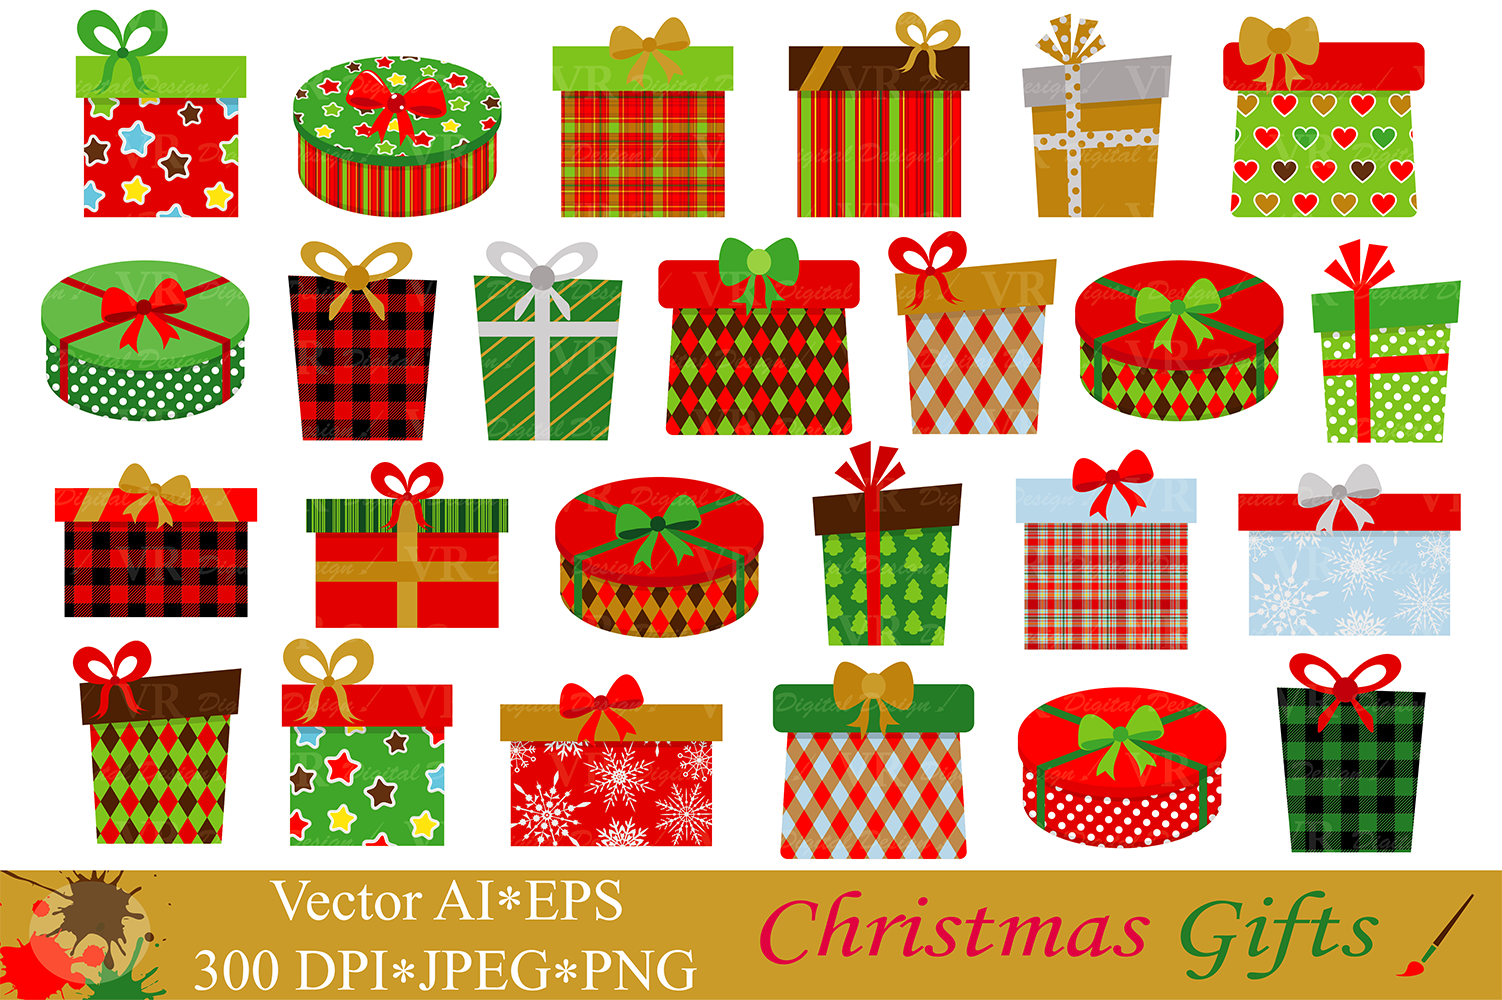 Christmas Gifts / Presents Clipart - Vector example image 1